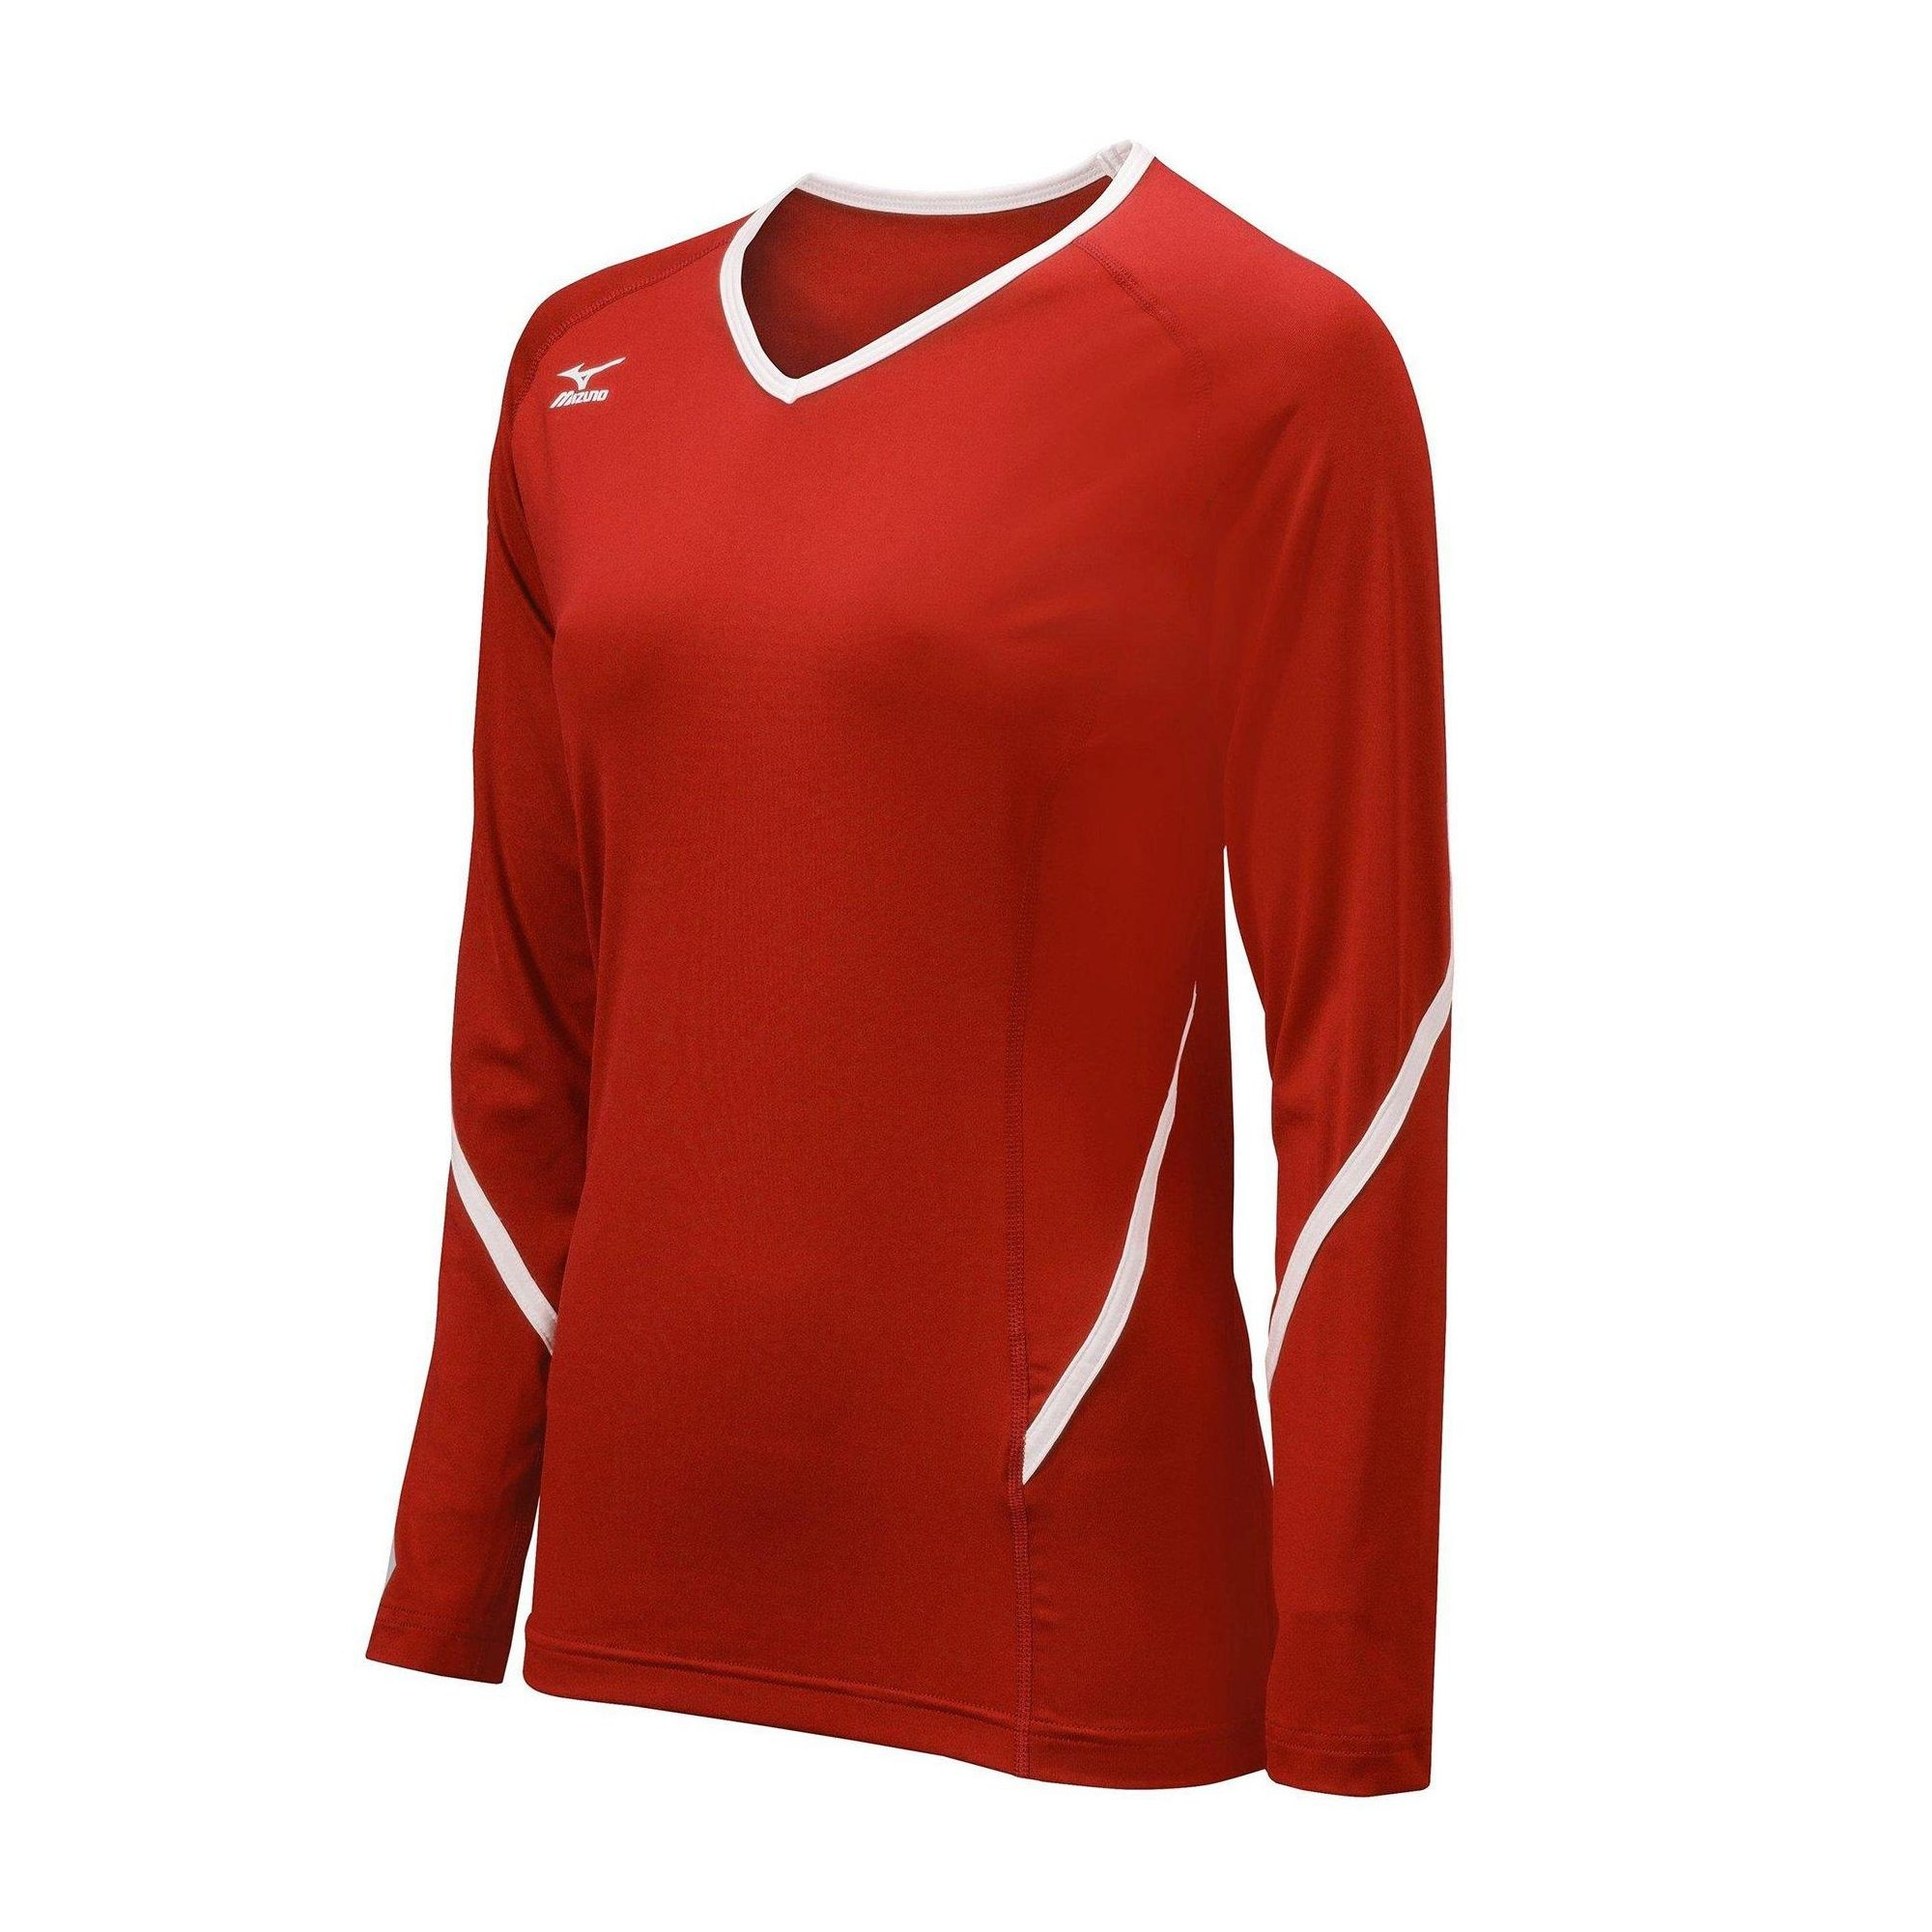 Mizuno Youth Volleyball Apparel Youth Techno Generation Long Sleeve Jersey 440458 Size Medium Red White Long Sleeve Top Volleyball Jerseys Women Volleyball